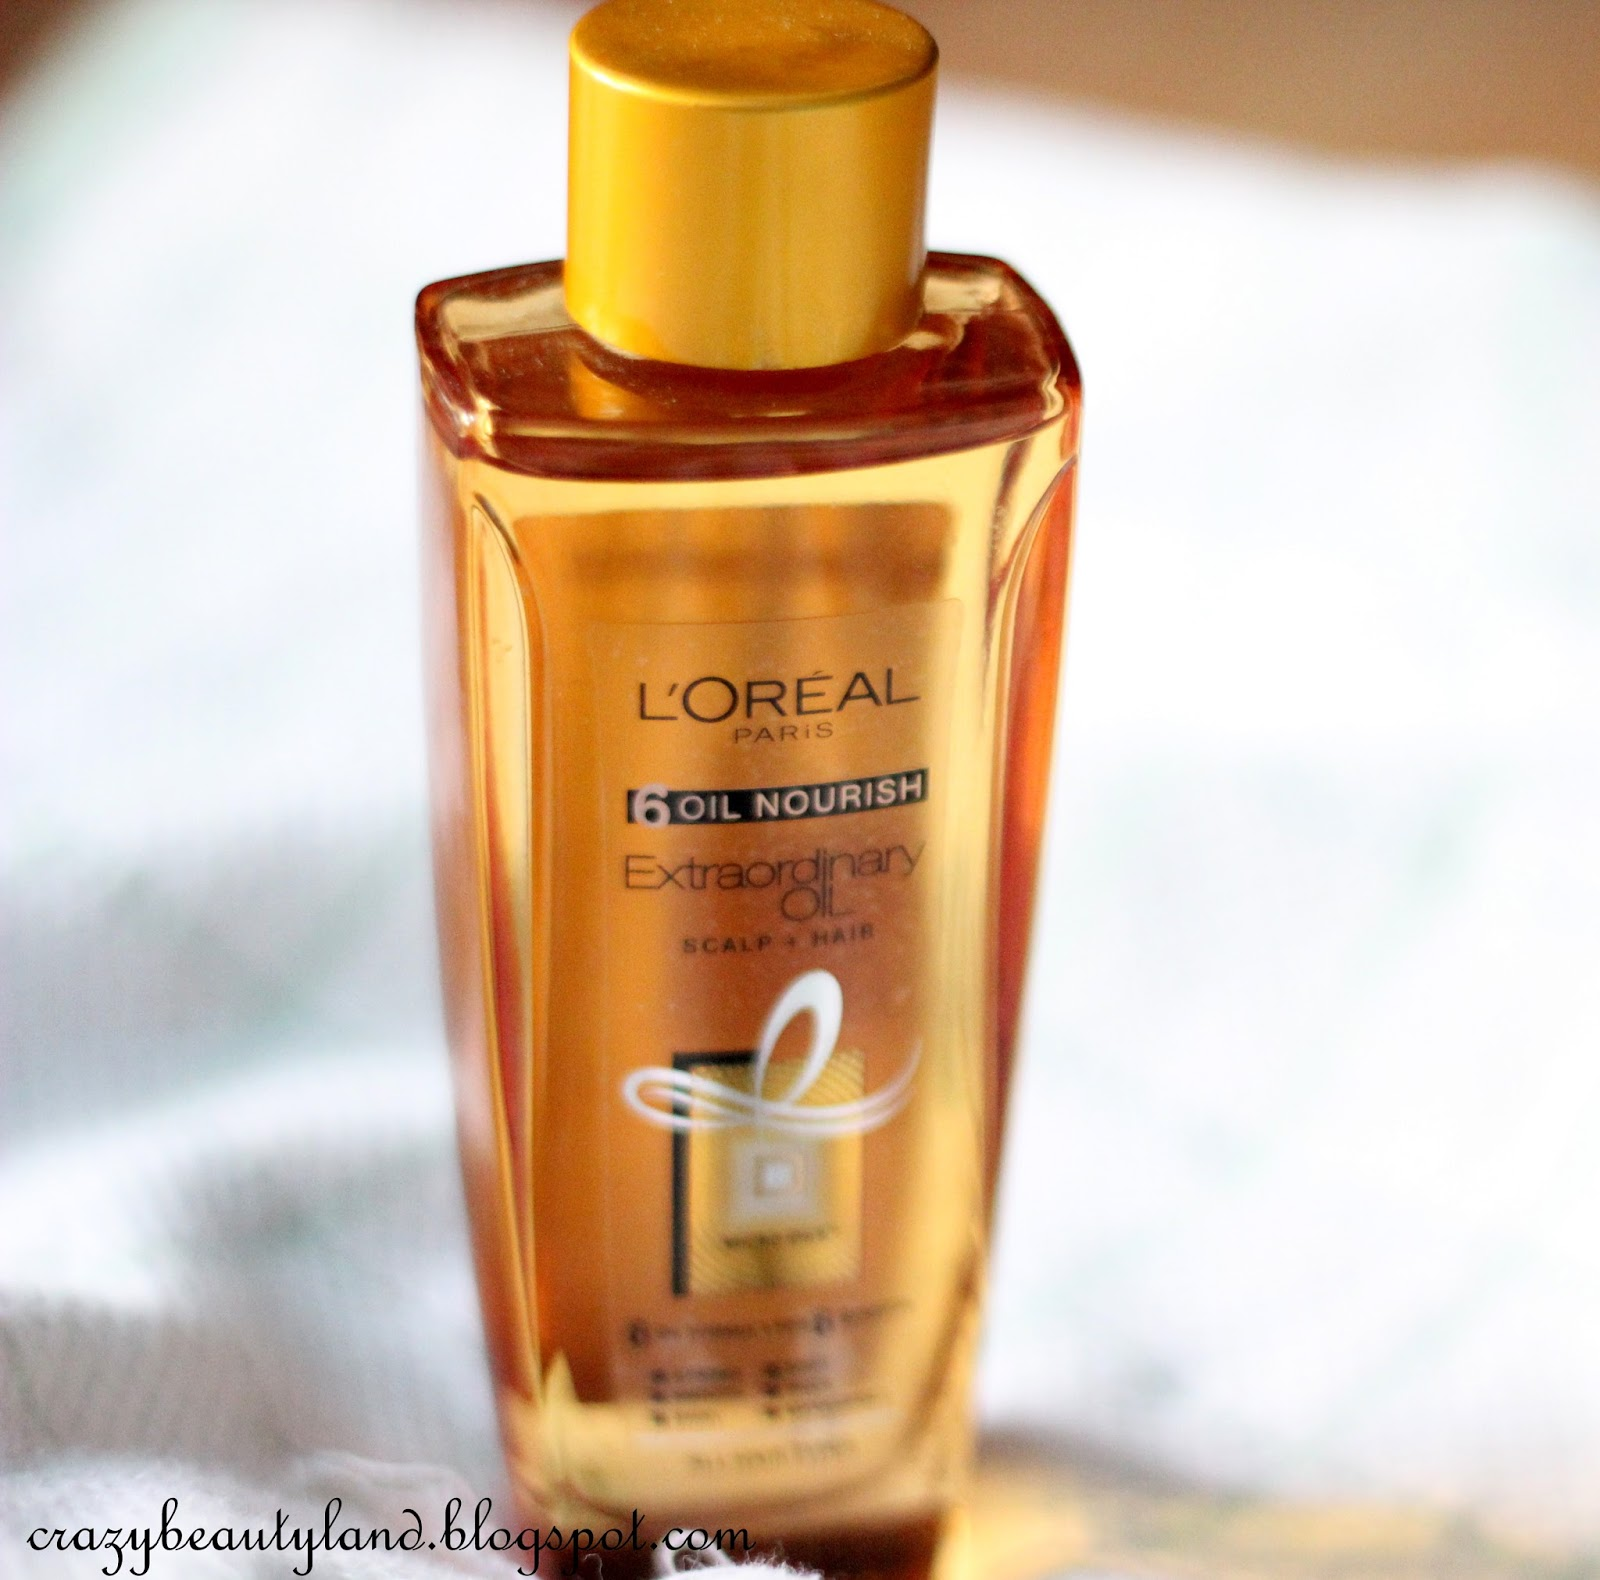 L'Oreal 6 Oil Nourish Extraordinary Oil Scalp+Hair in India - Review,photos,price, how to use it